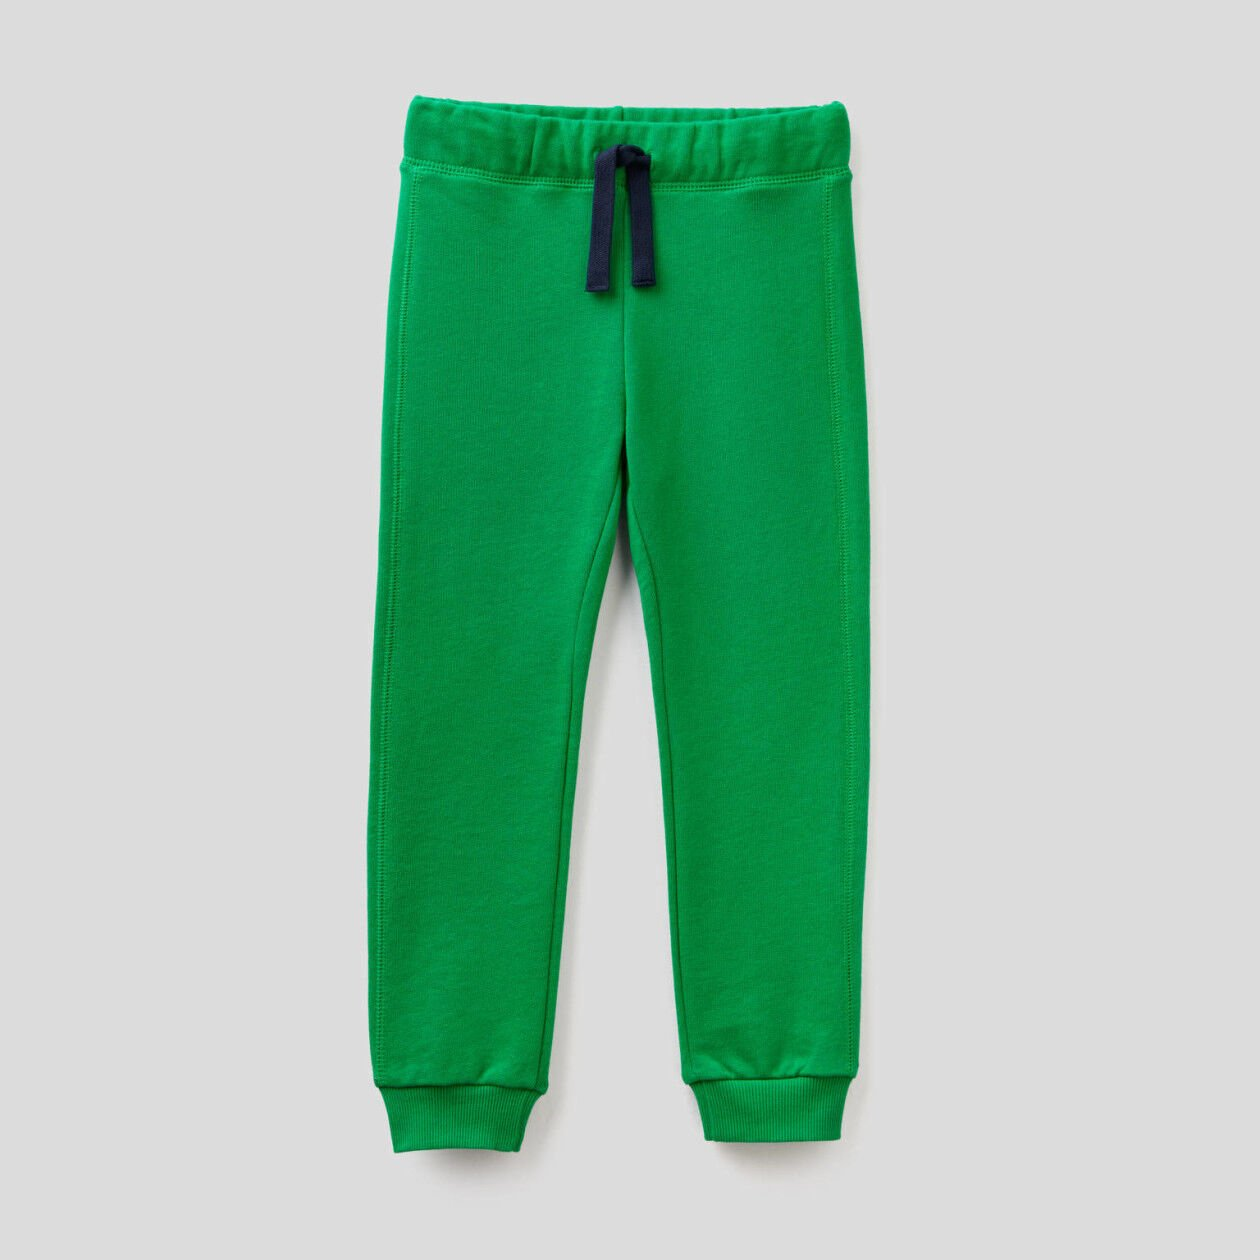 Sweatpants with pocket and maxi logo